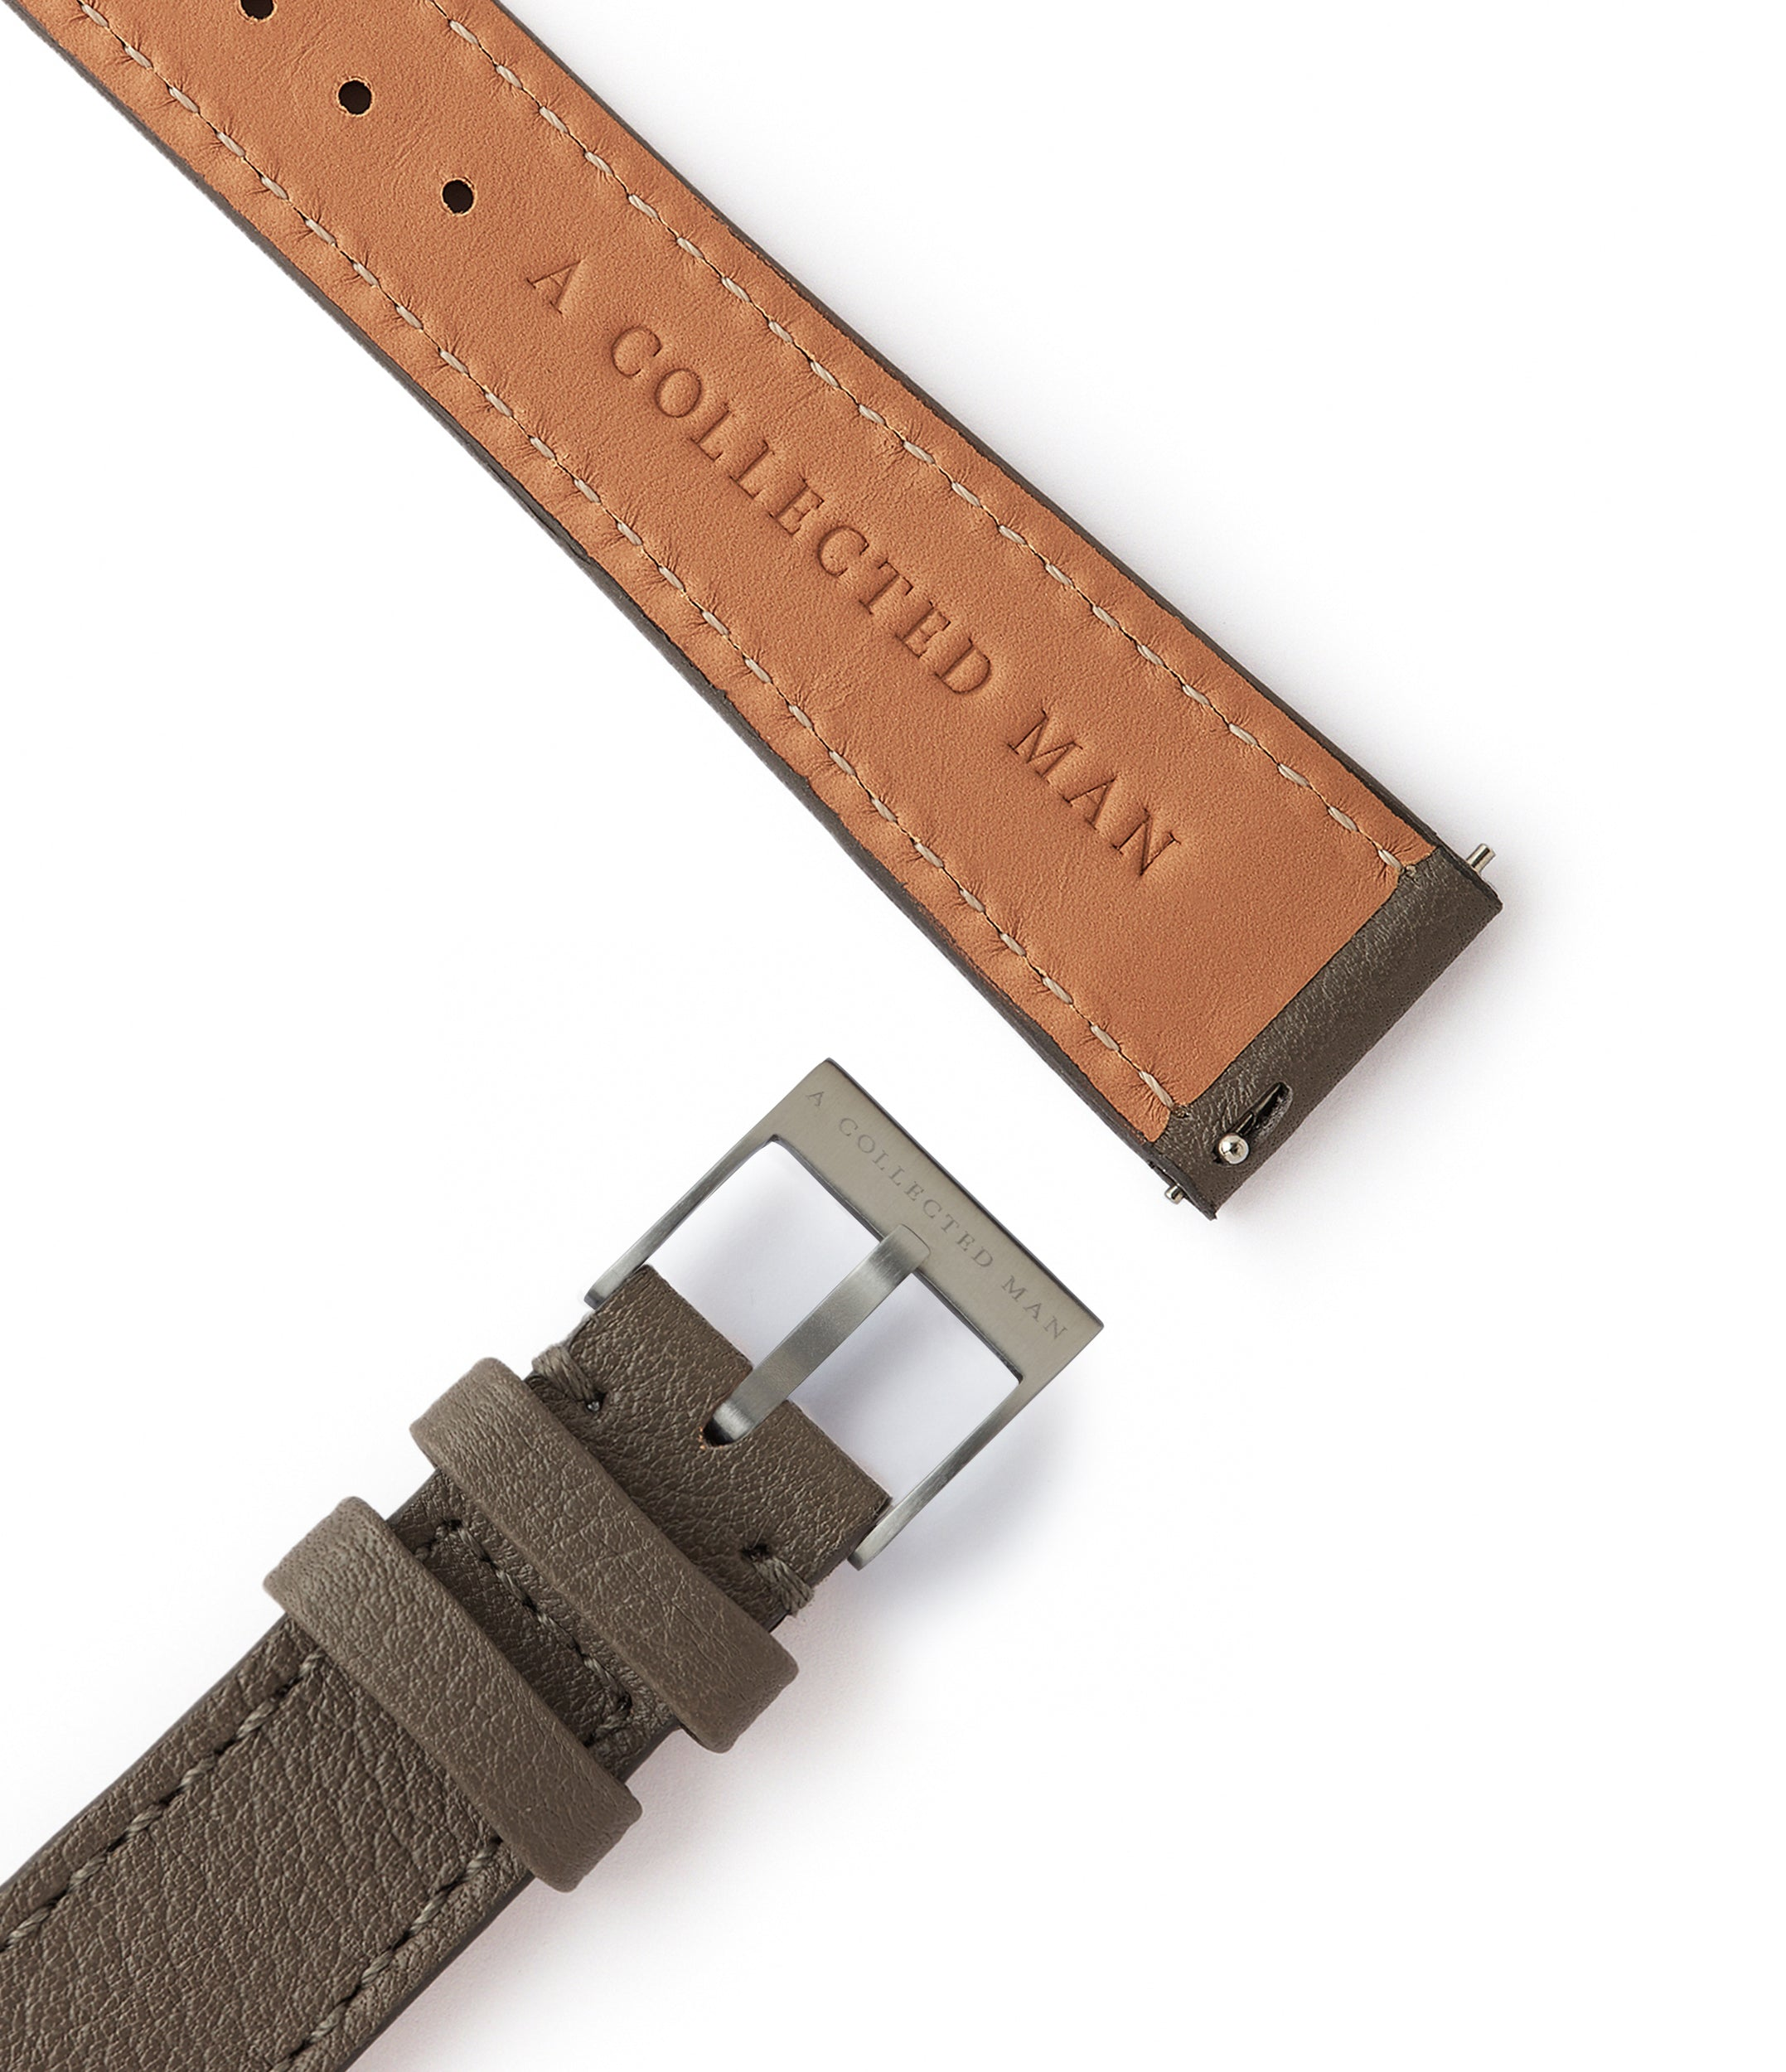 grey grained leather watch strap quick-release springbars Antwerp Molequin for sale order online at A Collected Man London